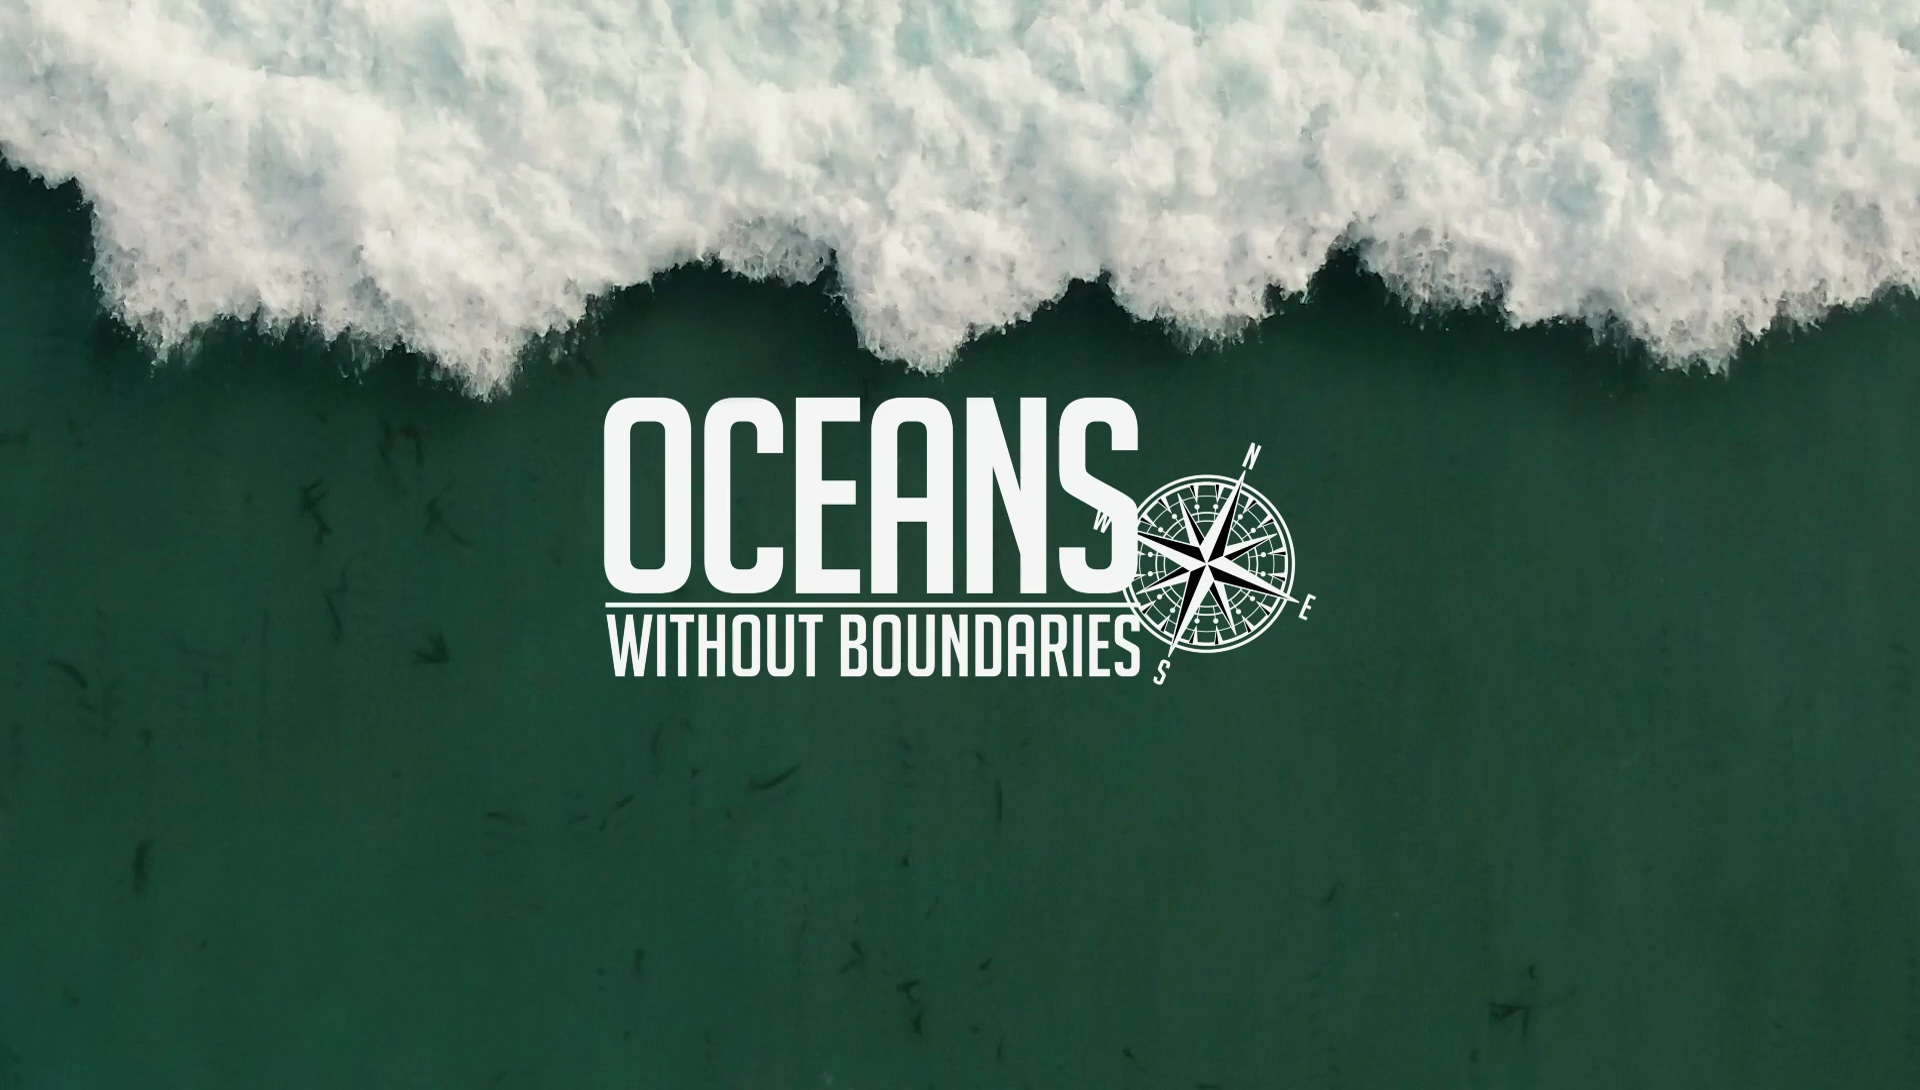 Faces of Africa – Oceans Without Boundaries